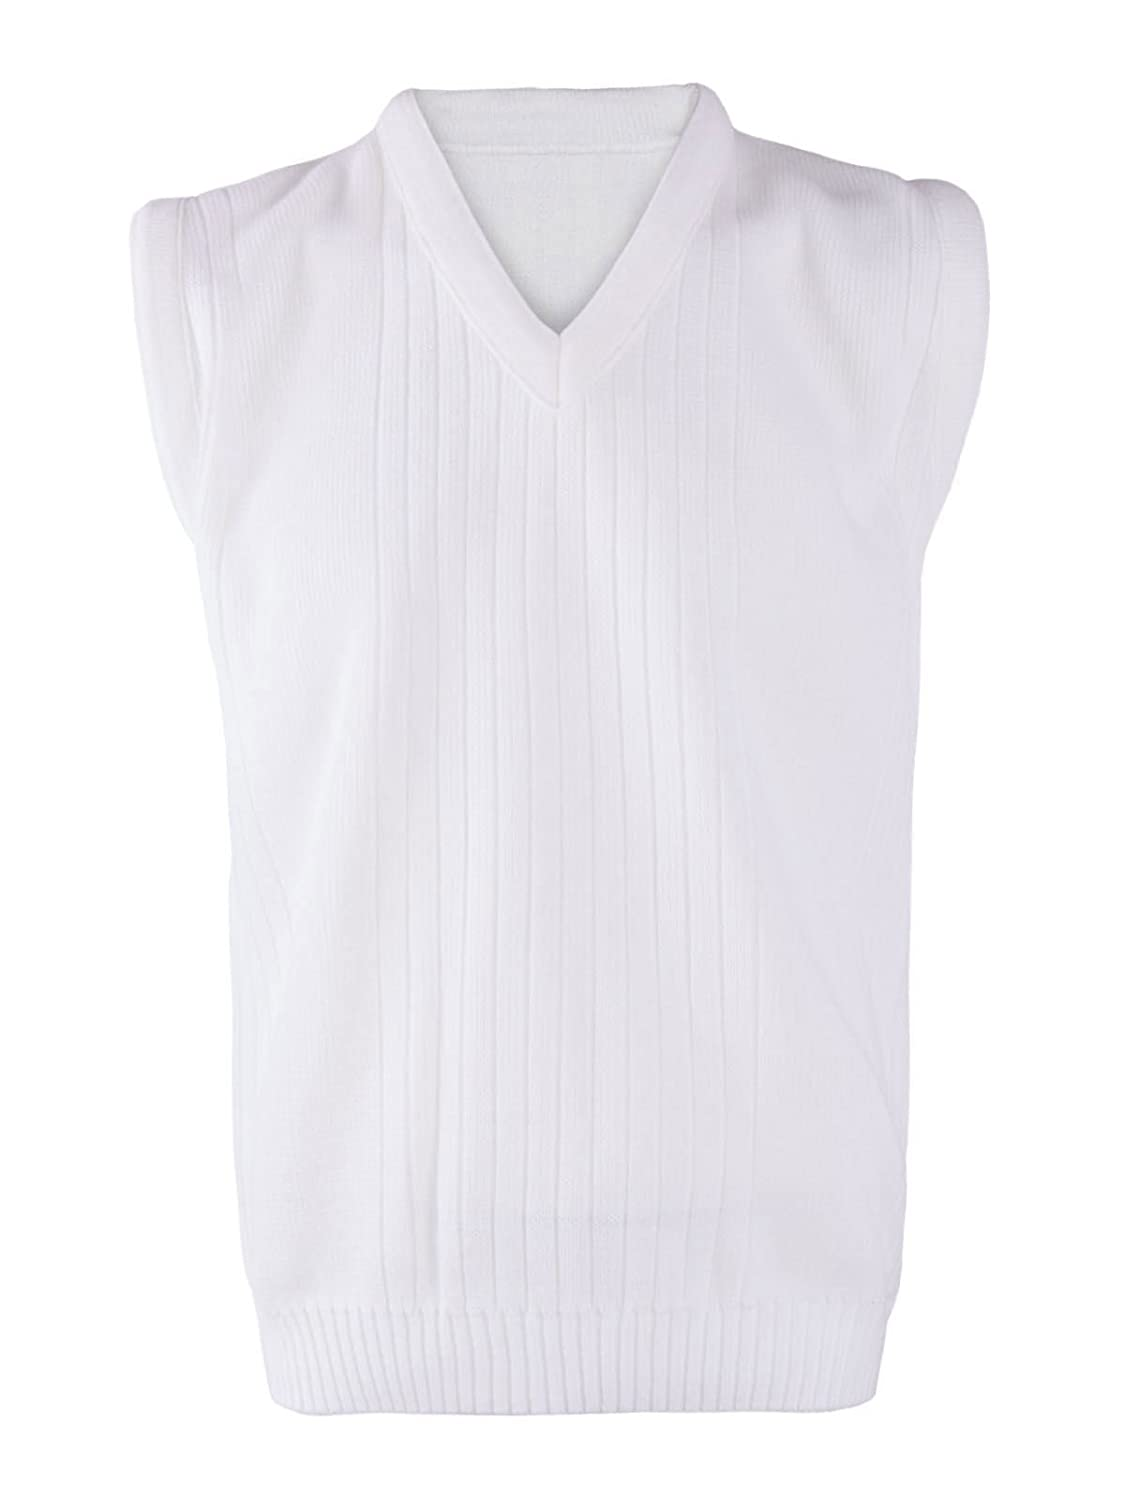 Rimi Hanger Mens Lawn Bowling Sleeveless V Neck Knitted Vest Top Adults Ribbed White Sweater S/5XL